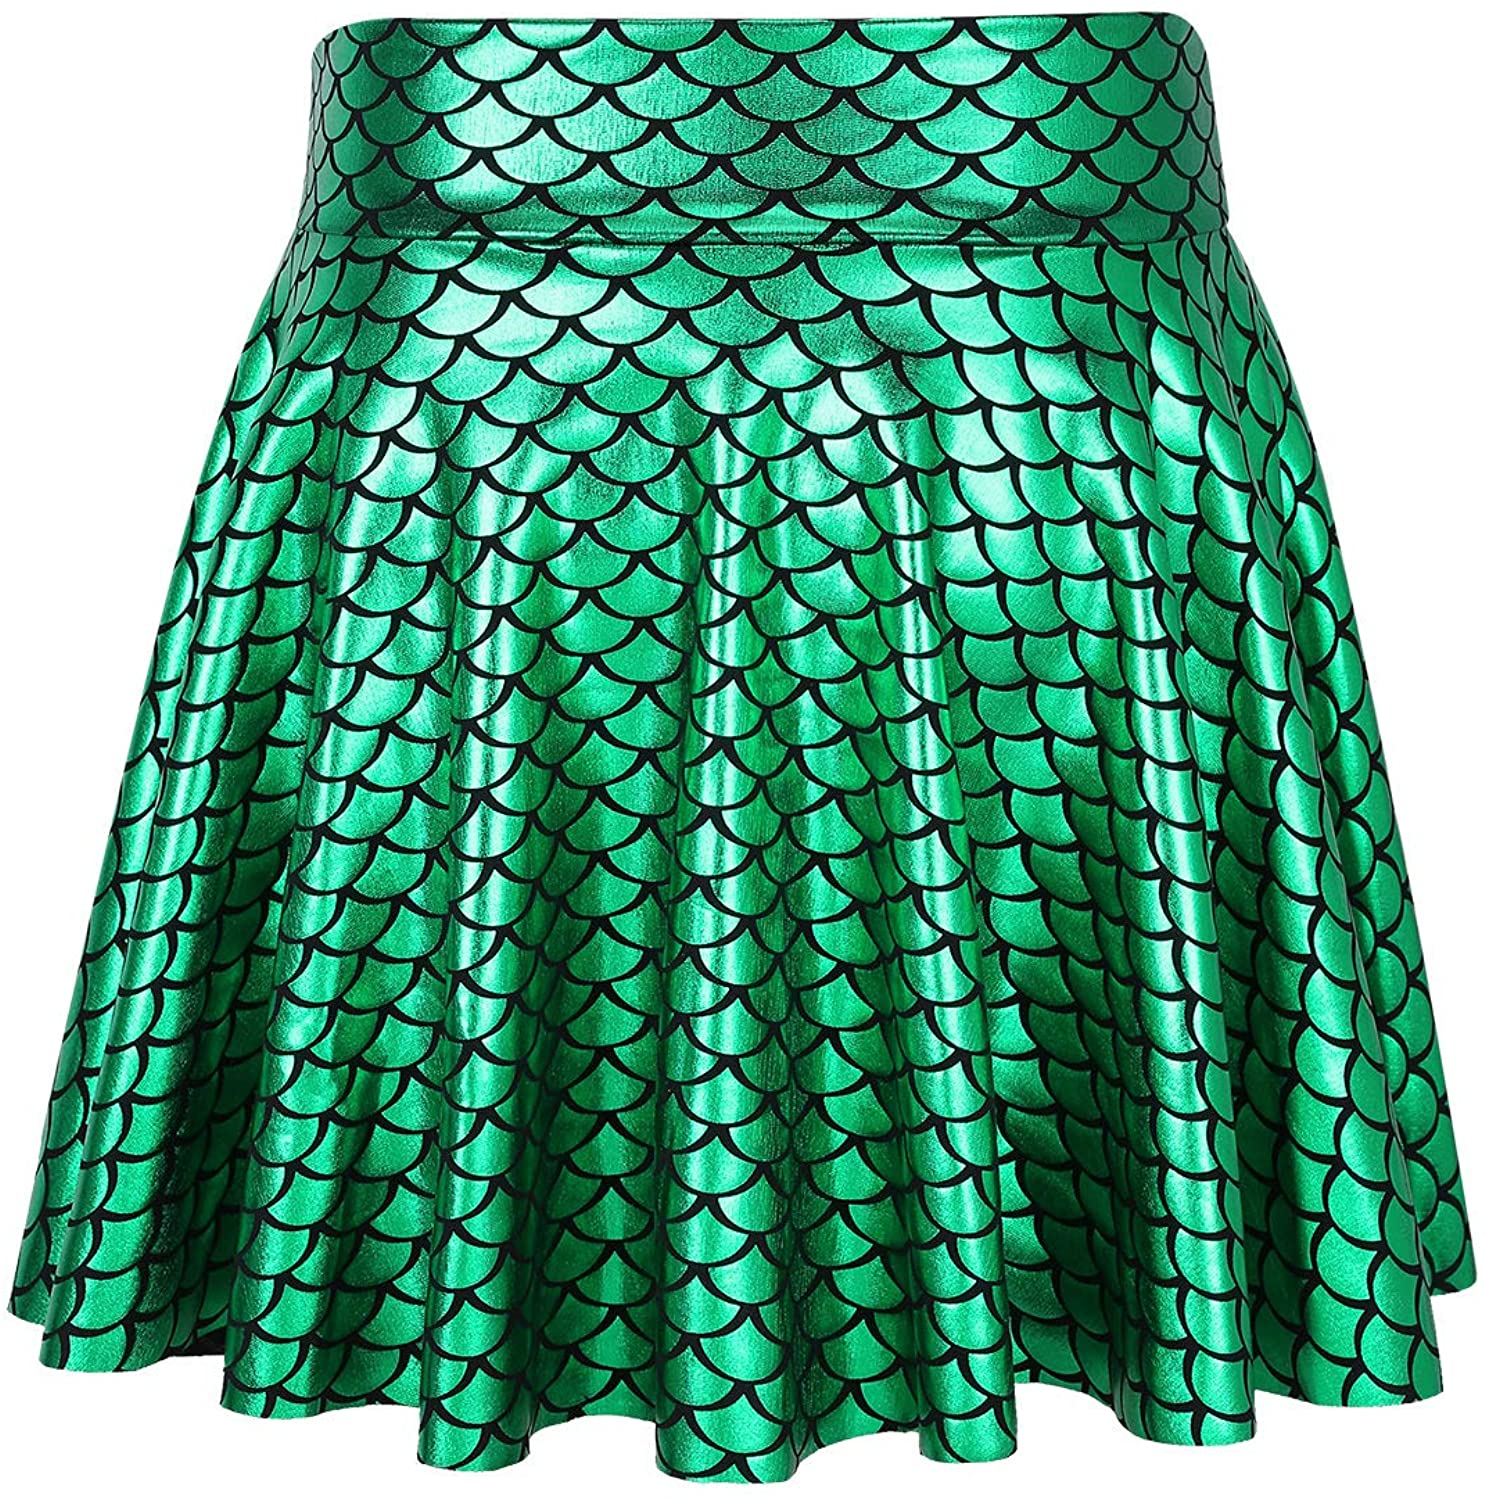 QinCiao Kids Girls Glossy Fish Scales Printed Mini Skirt Flared Dance Skater Skirt for Halloween Mermaid Cosplay Party